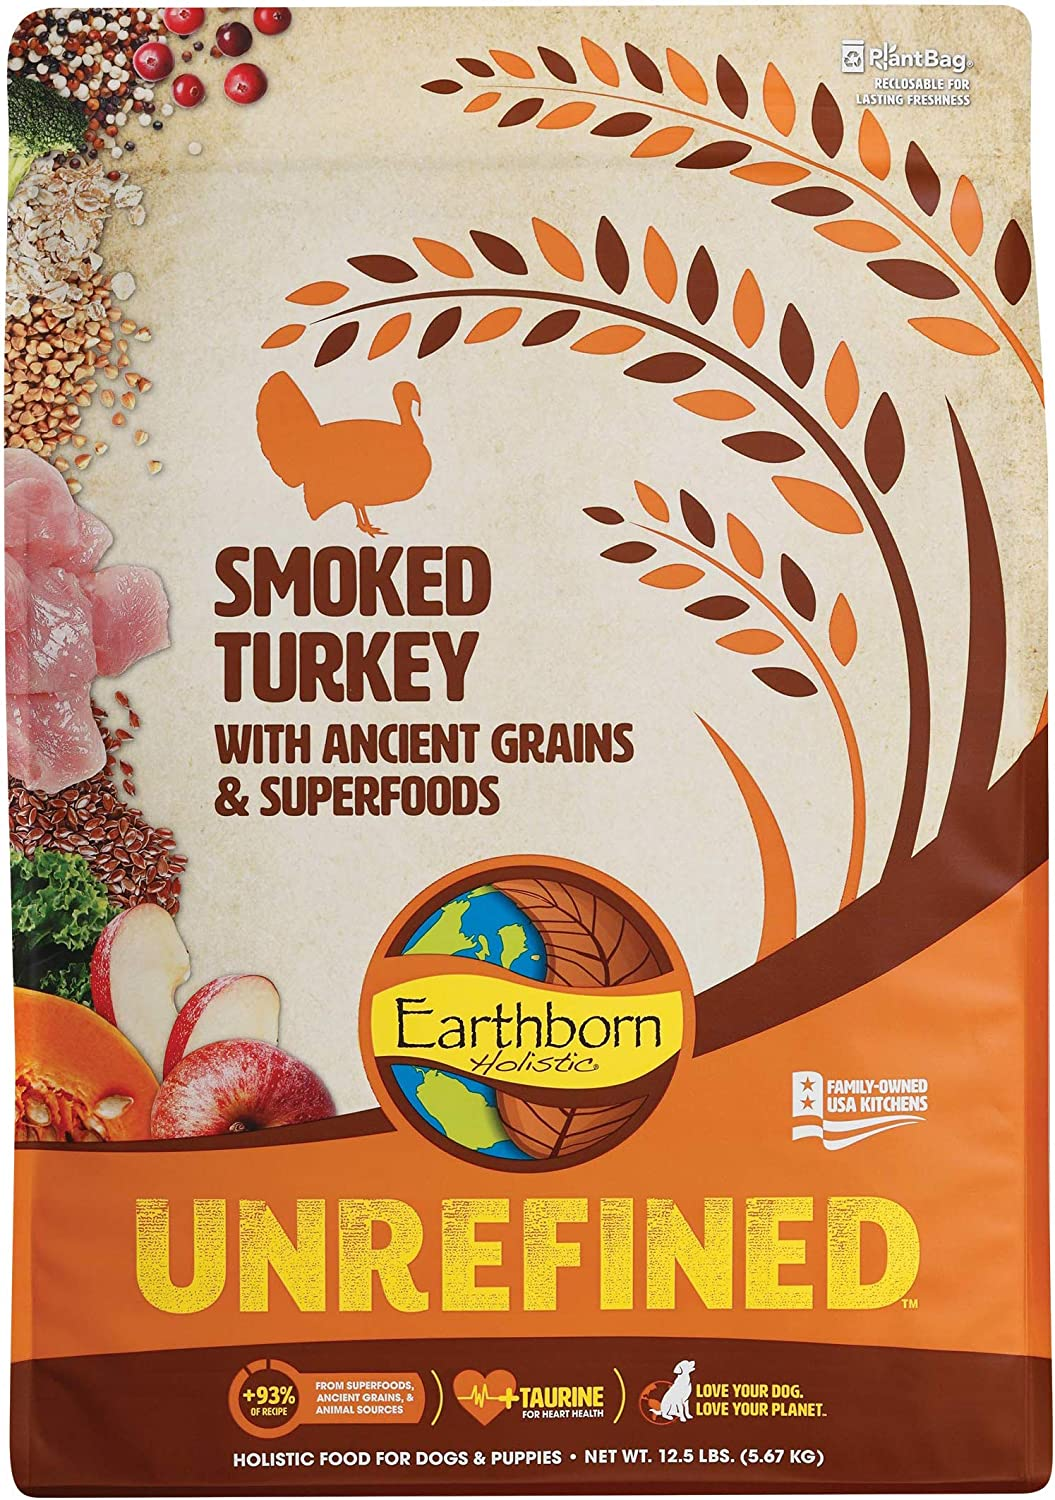 Earthborn Holistic Unrefined Smoked Turkey with Ancient Grains & Superfoods Dry Dog Food